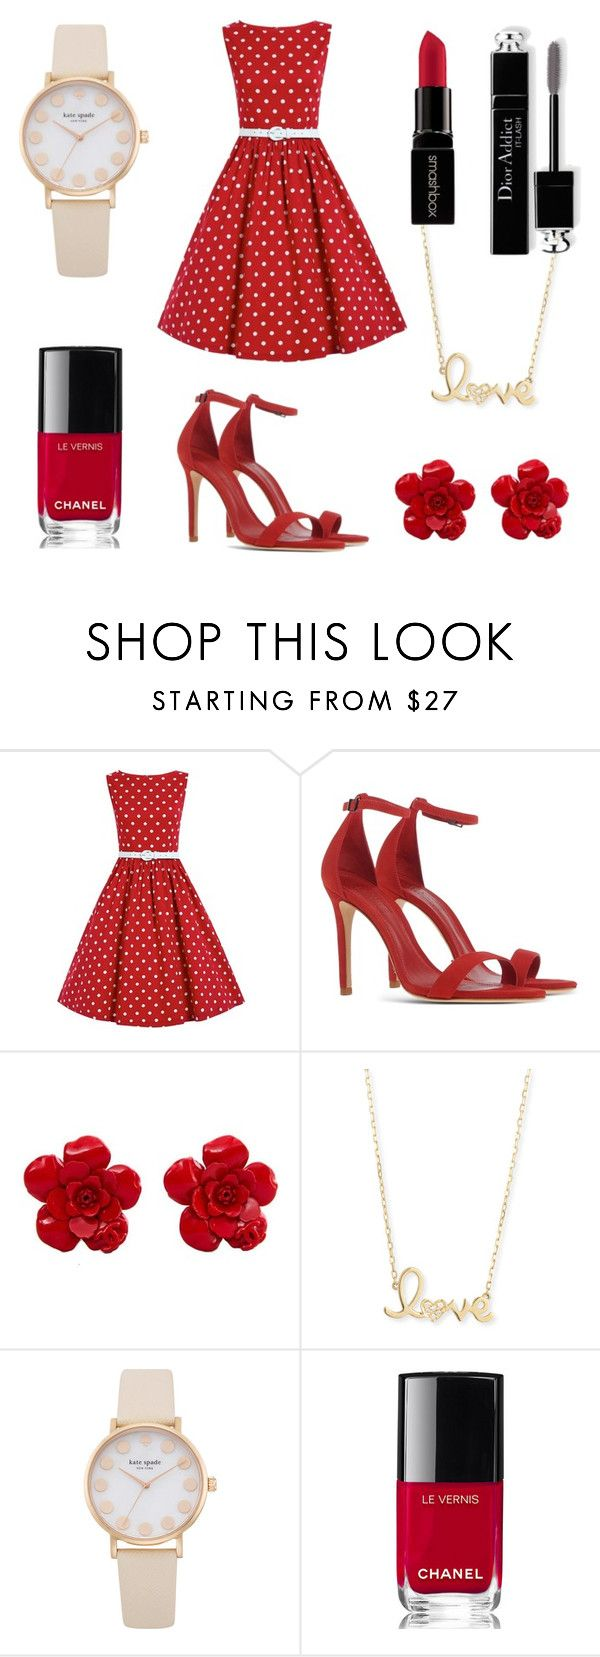 """All red everything - back to the 80's"" by shop-styleloft on Polyvore featuring Schutz, Chanel, Sydney Evan, Christian Dior and Smashbox"